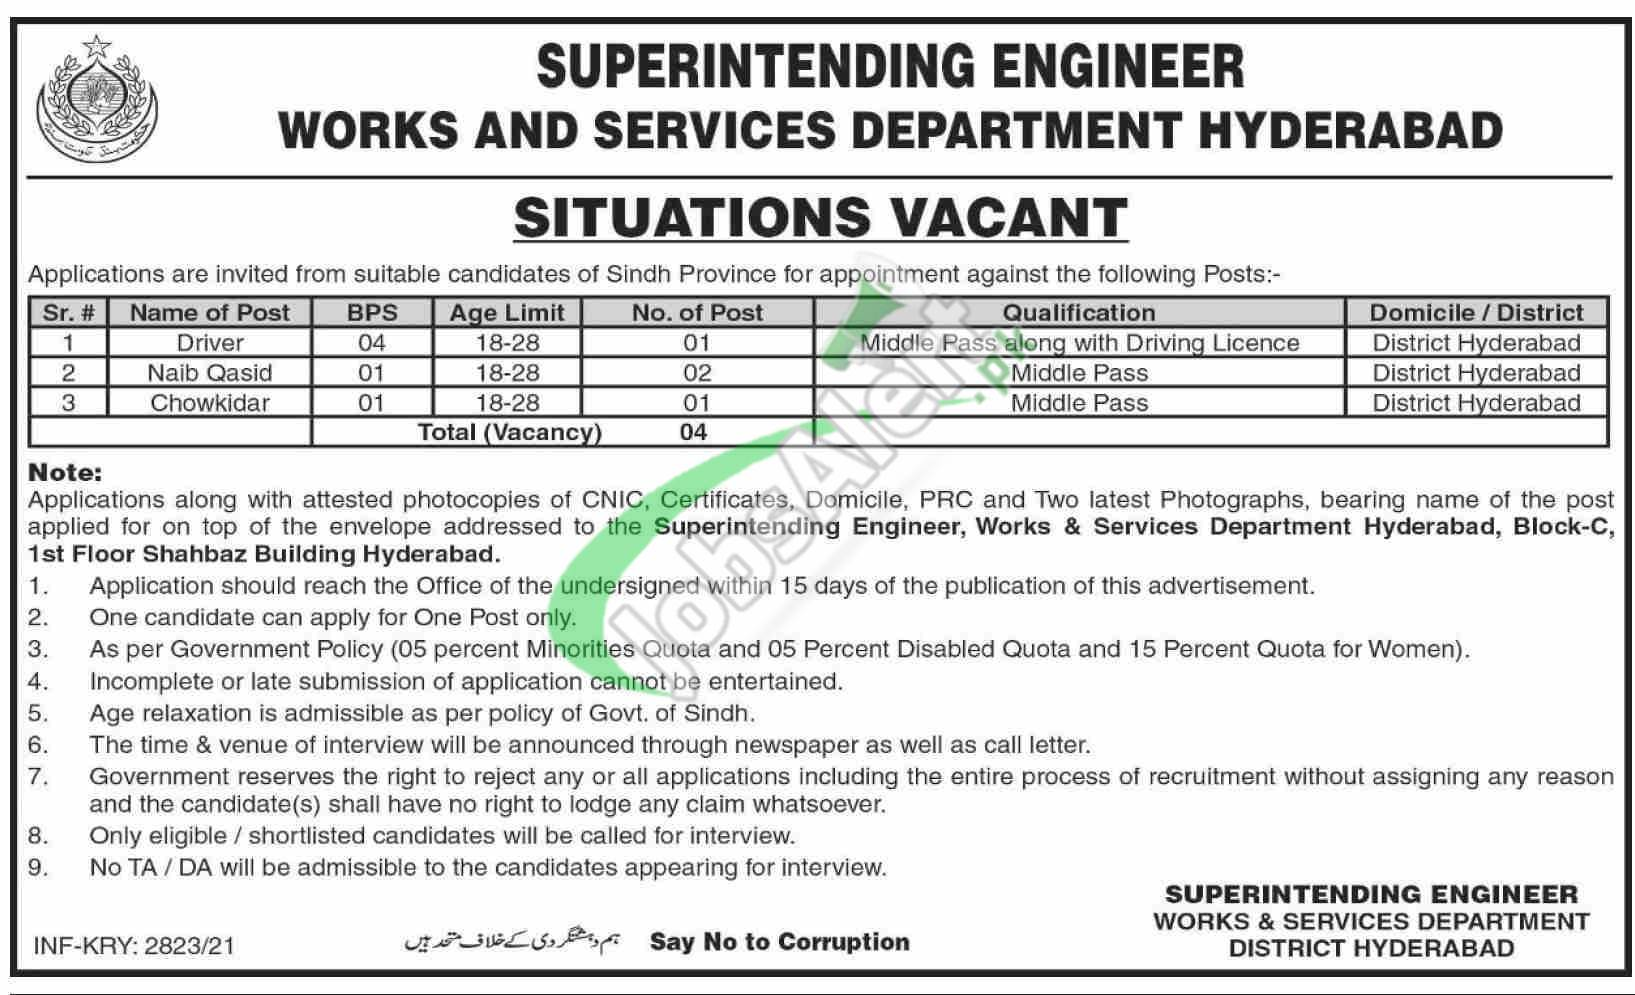 Works and Services Department Hyderabad Jobs 2021